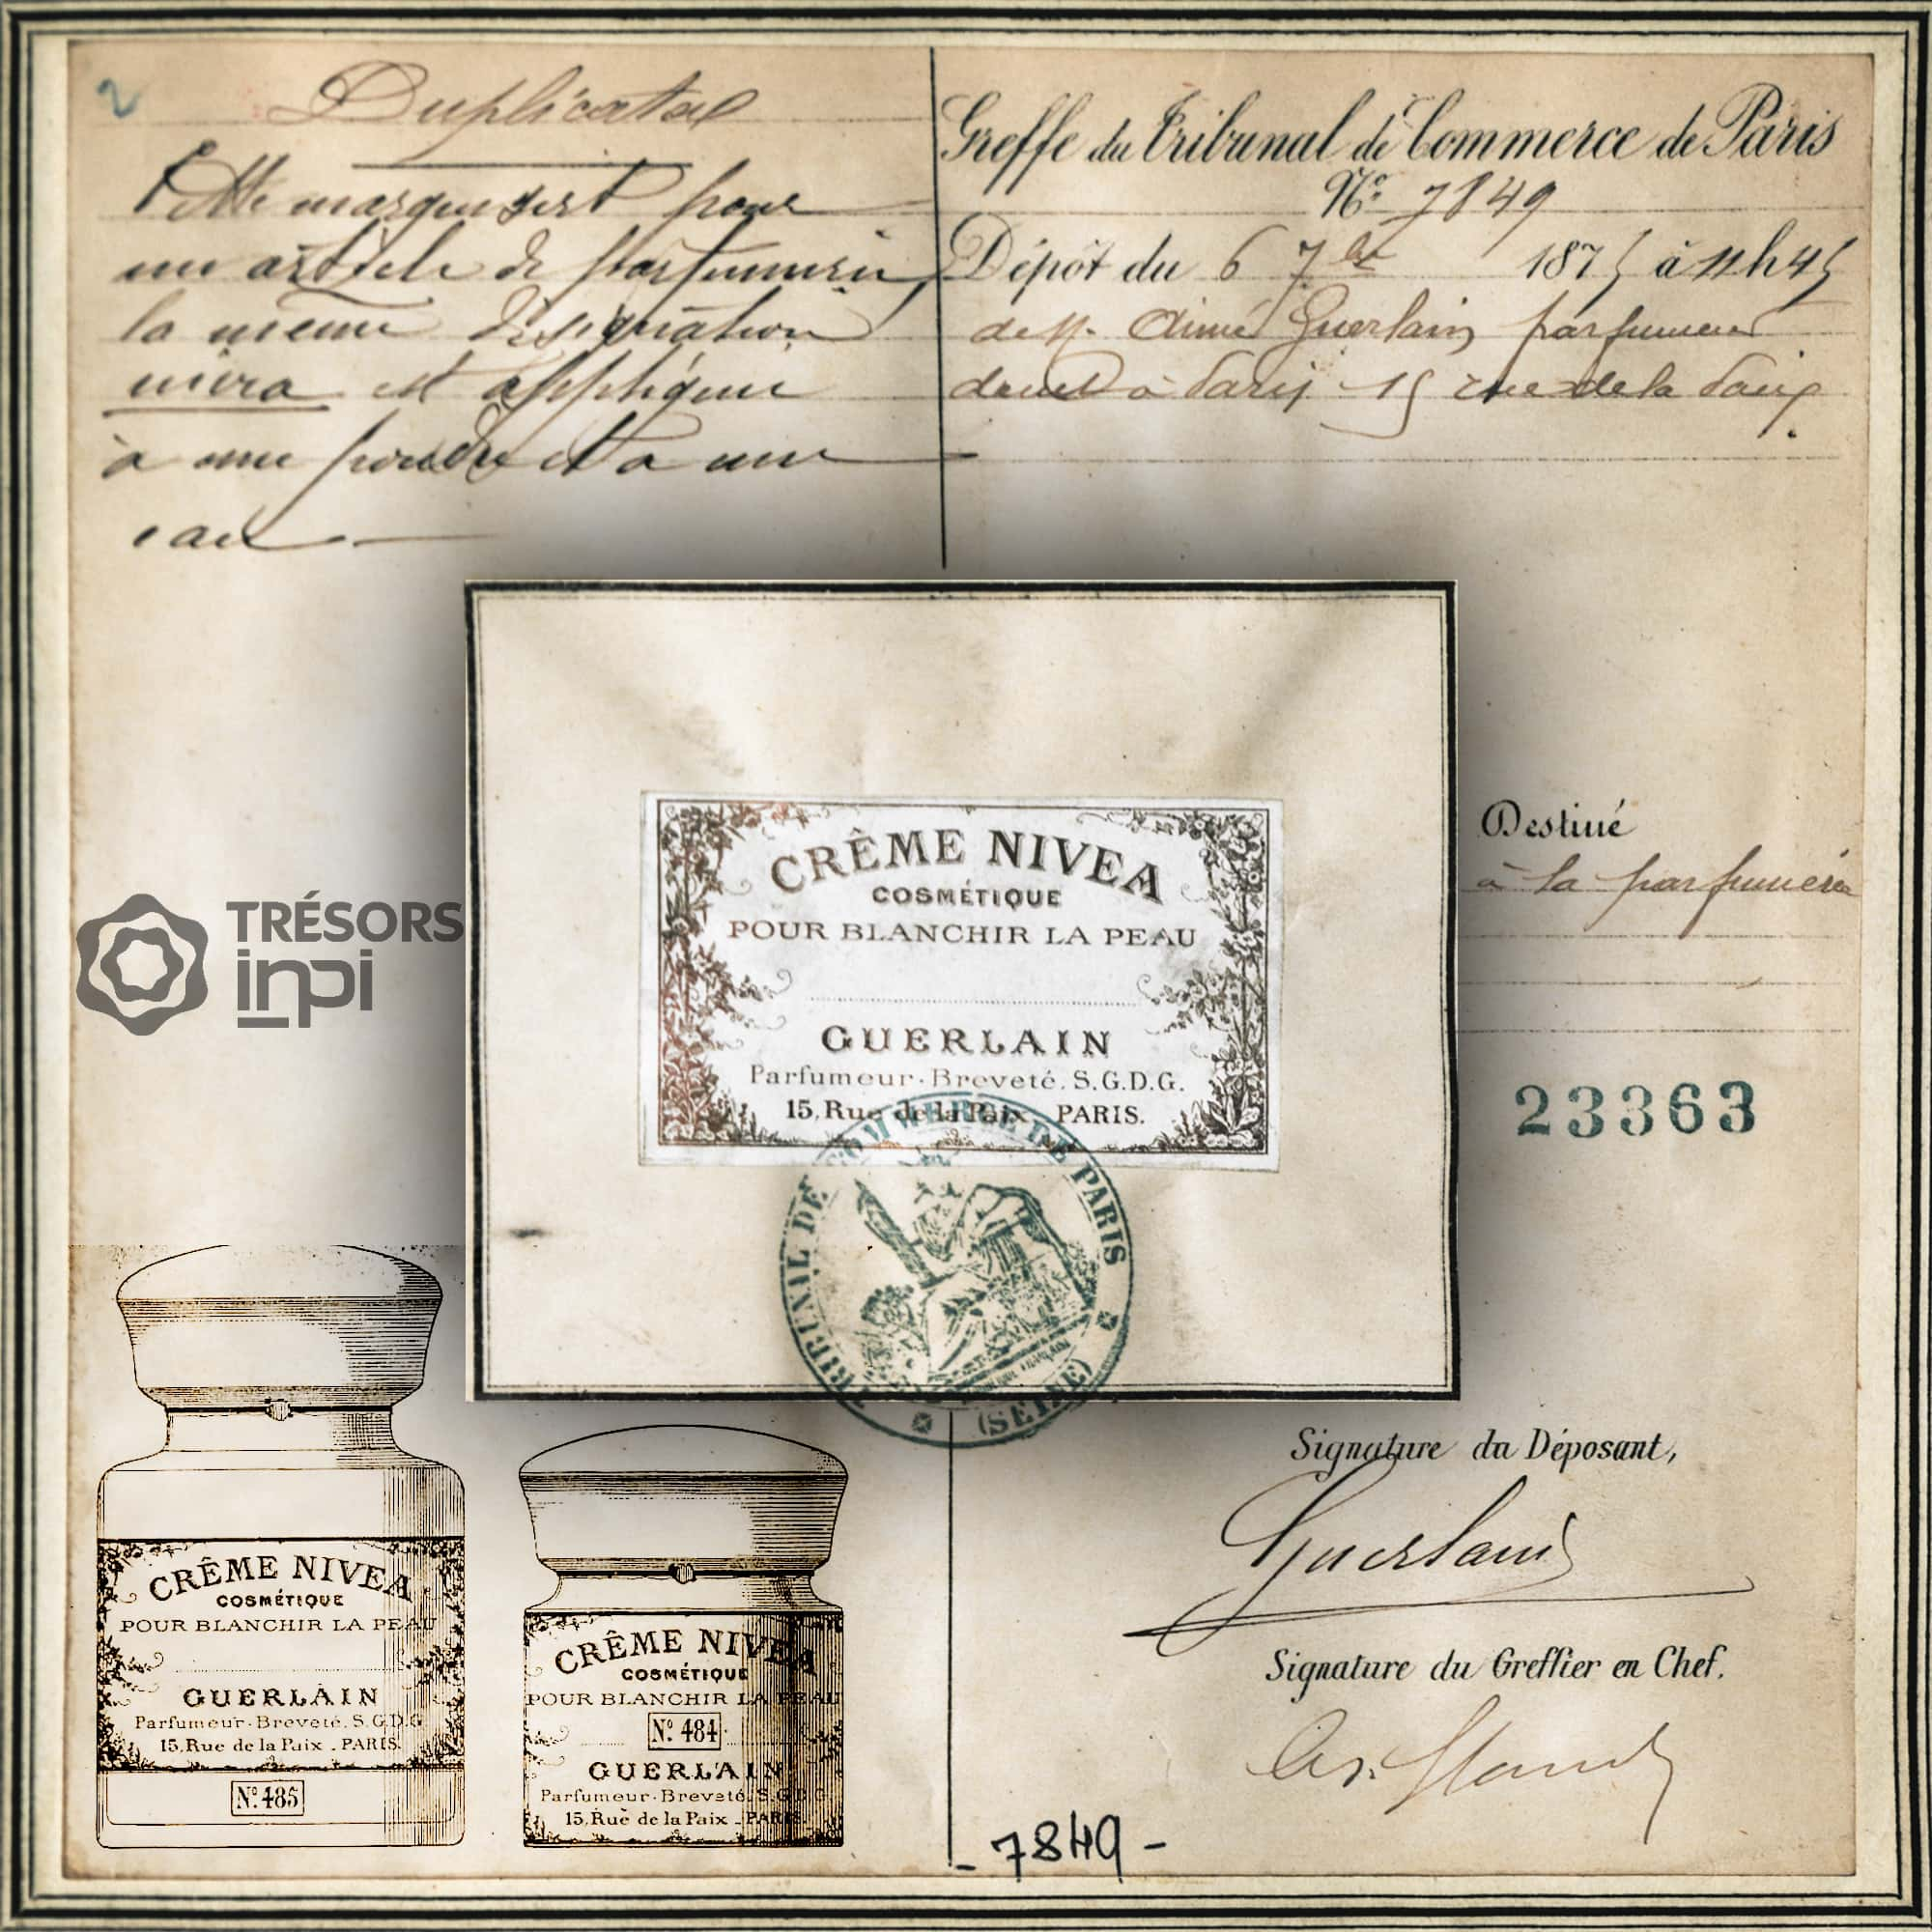 Aimé Guerlain filed Patent 1875 for Nivea Cream -Tresors INPI by RUNWAY MAGAZINE